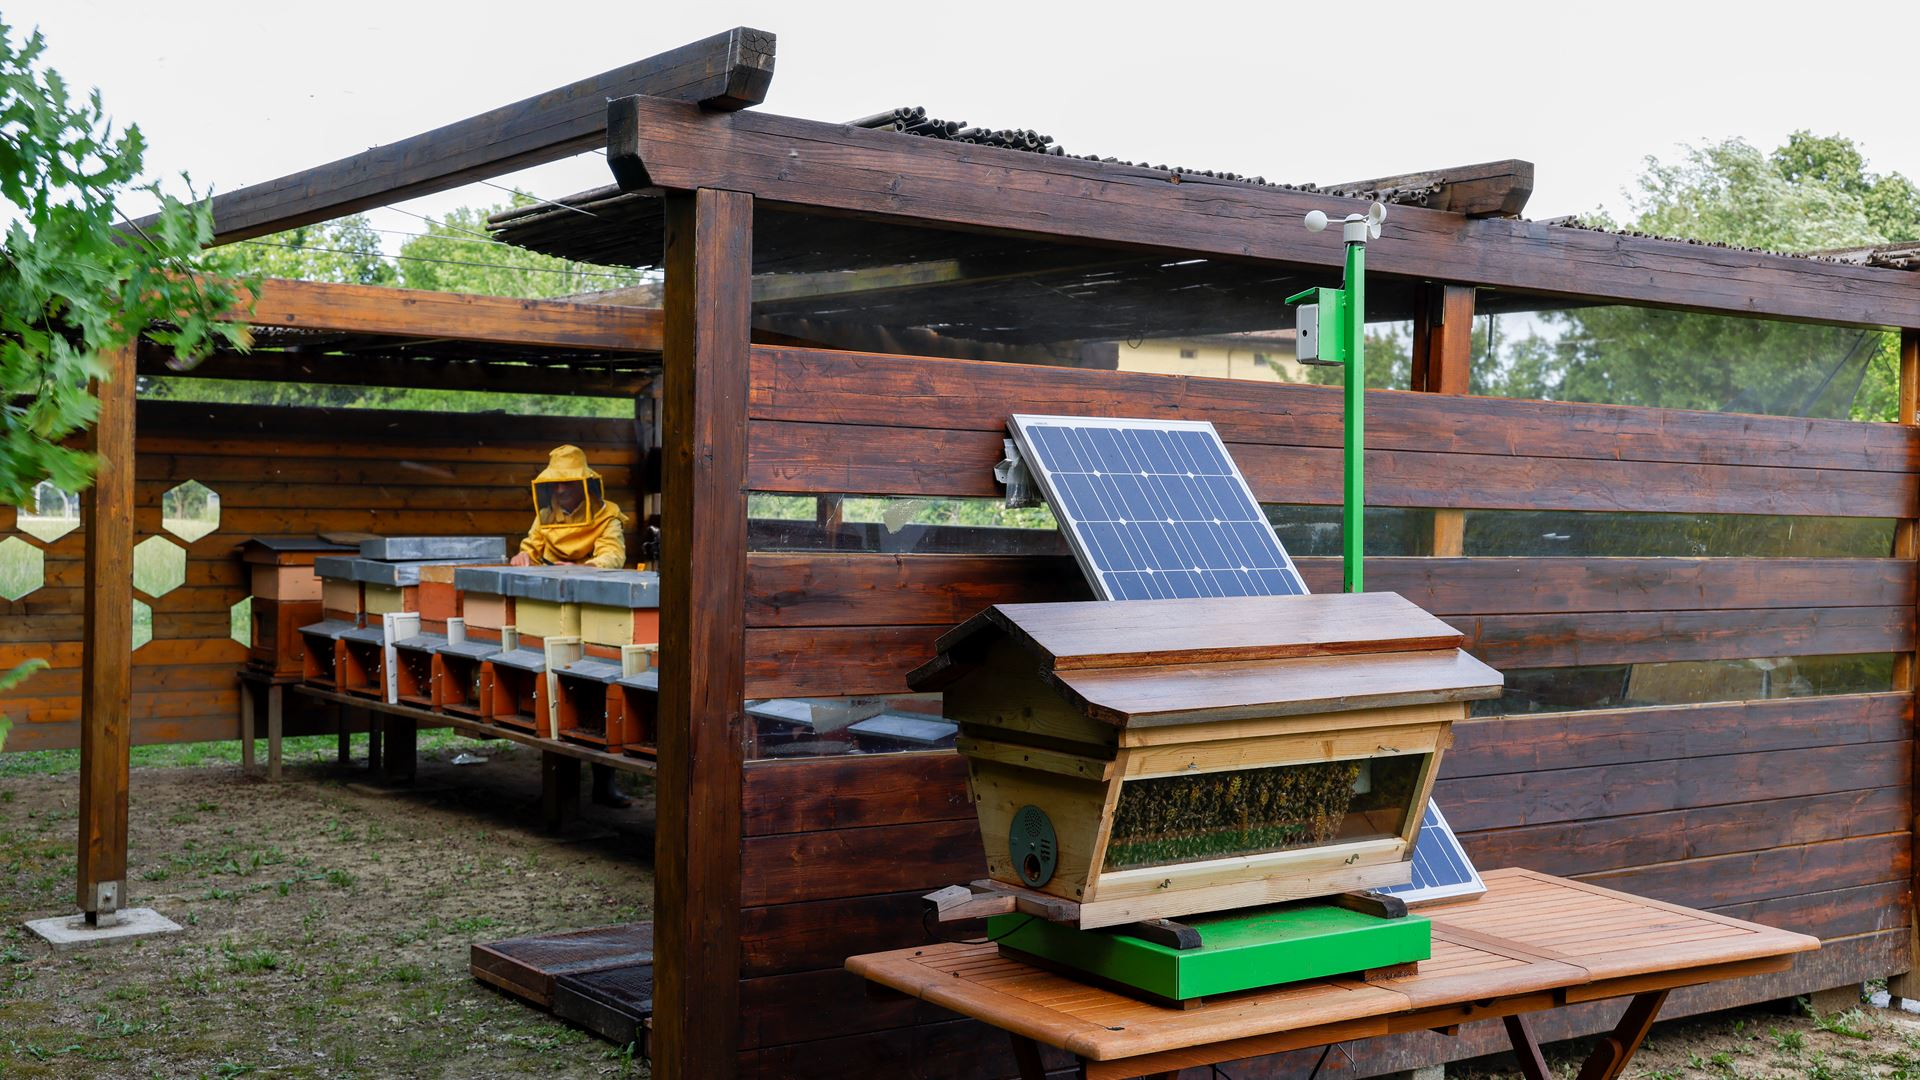 May 20, World Bee Day: Since 2016 Lamborghini has worked with bees in an environmental biomonitoring project - Image 5